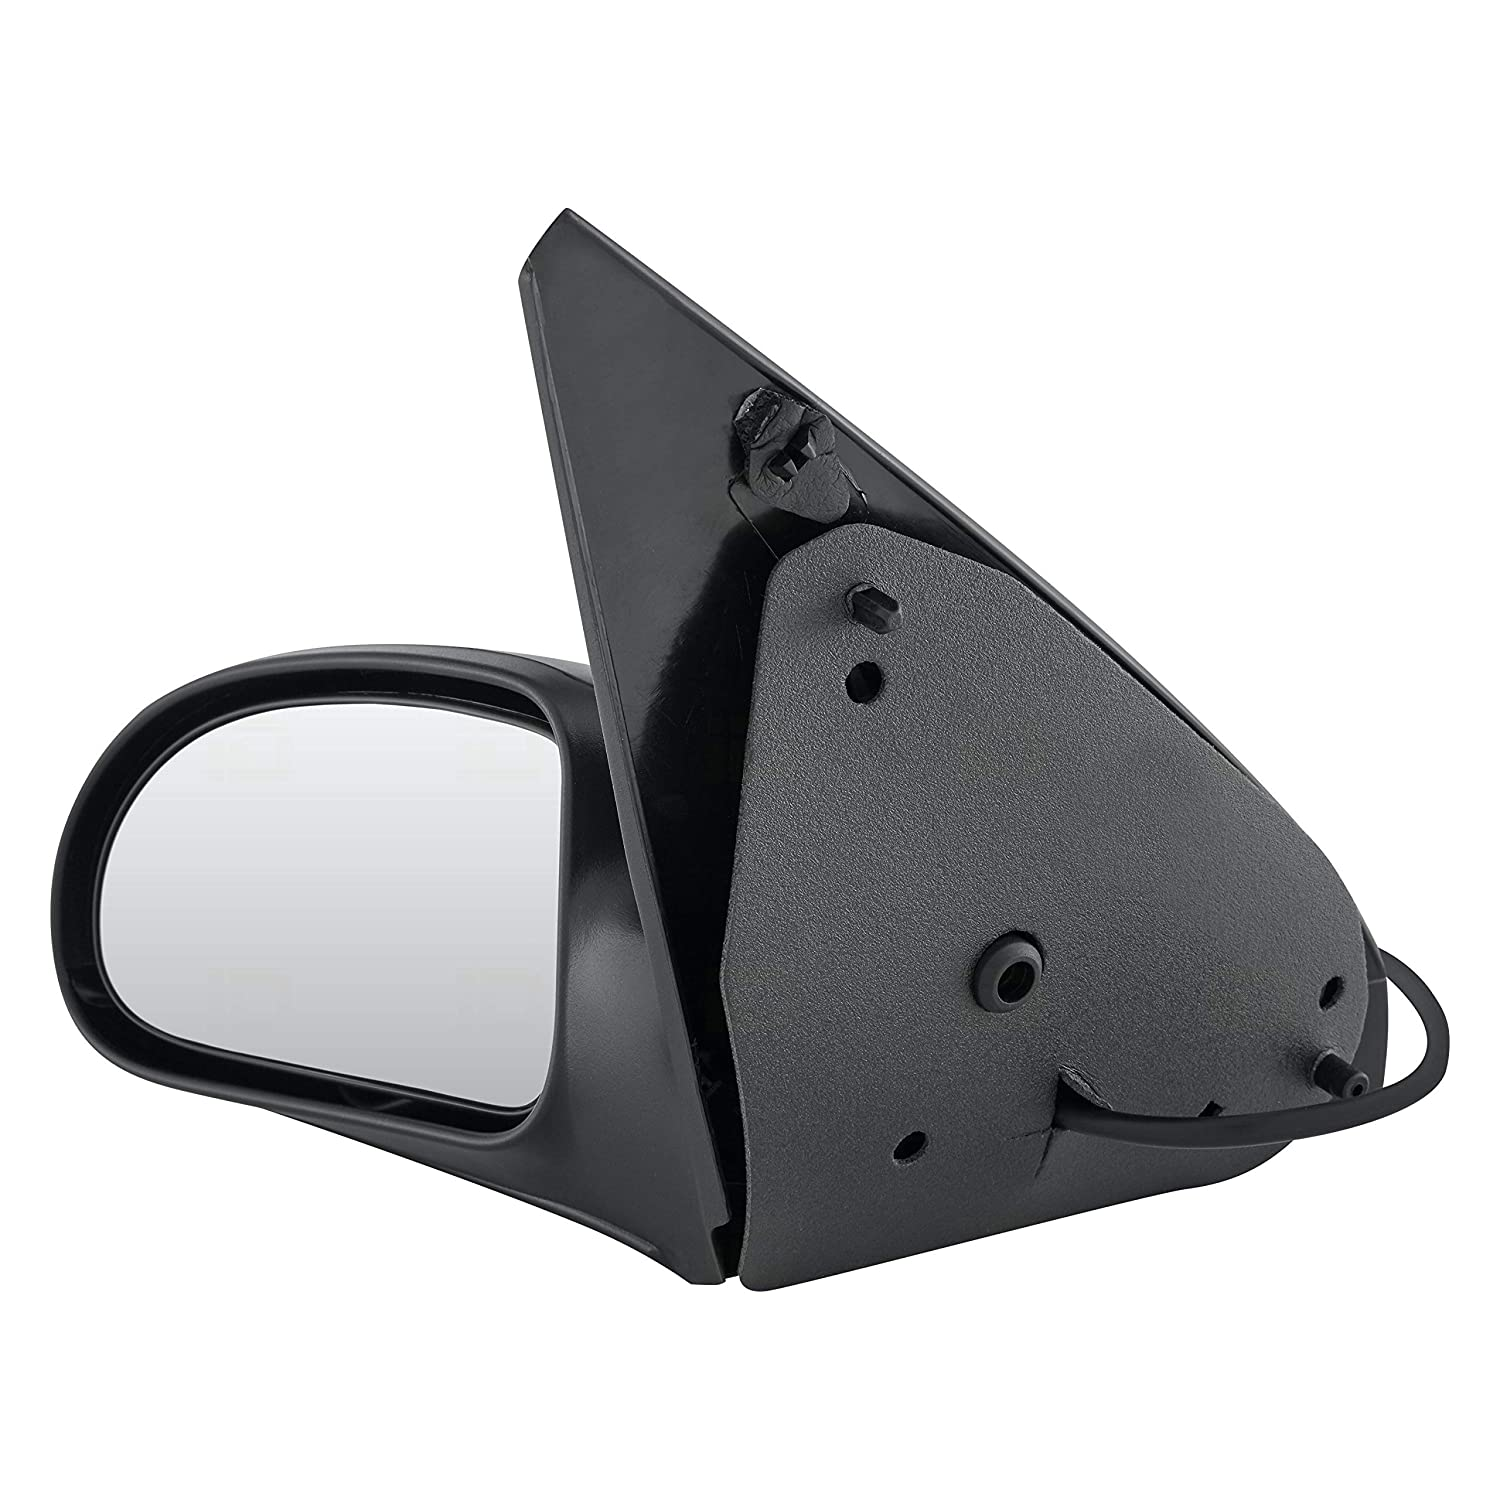 FO1320180 Non-Heated Power Roane Concepts Replacement Left Driver Side Door Mirror for 2000-2007 Ford Focus Black